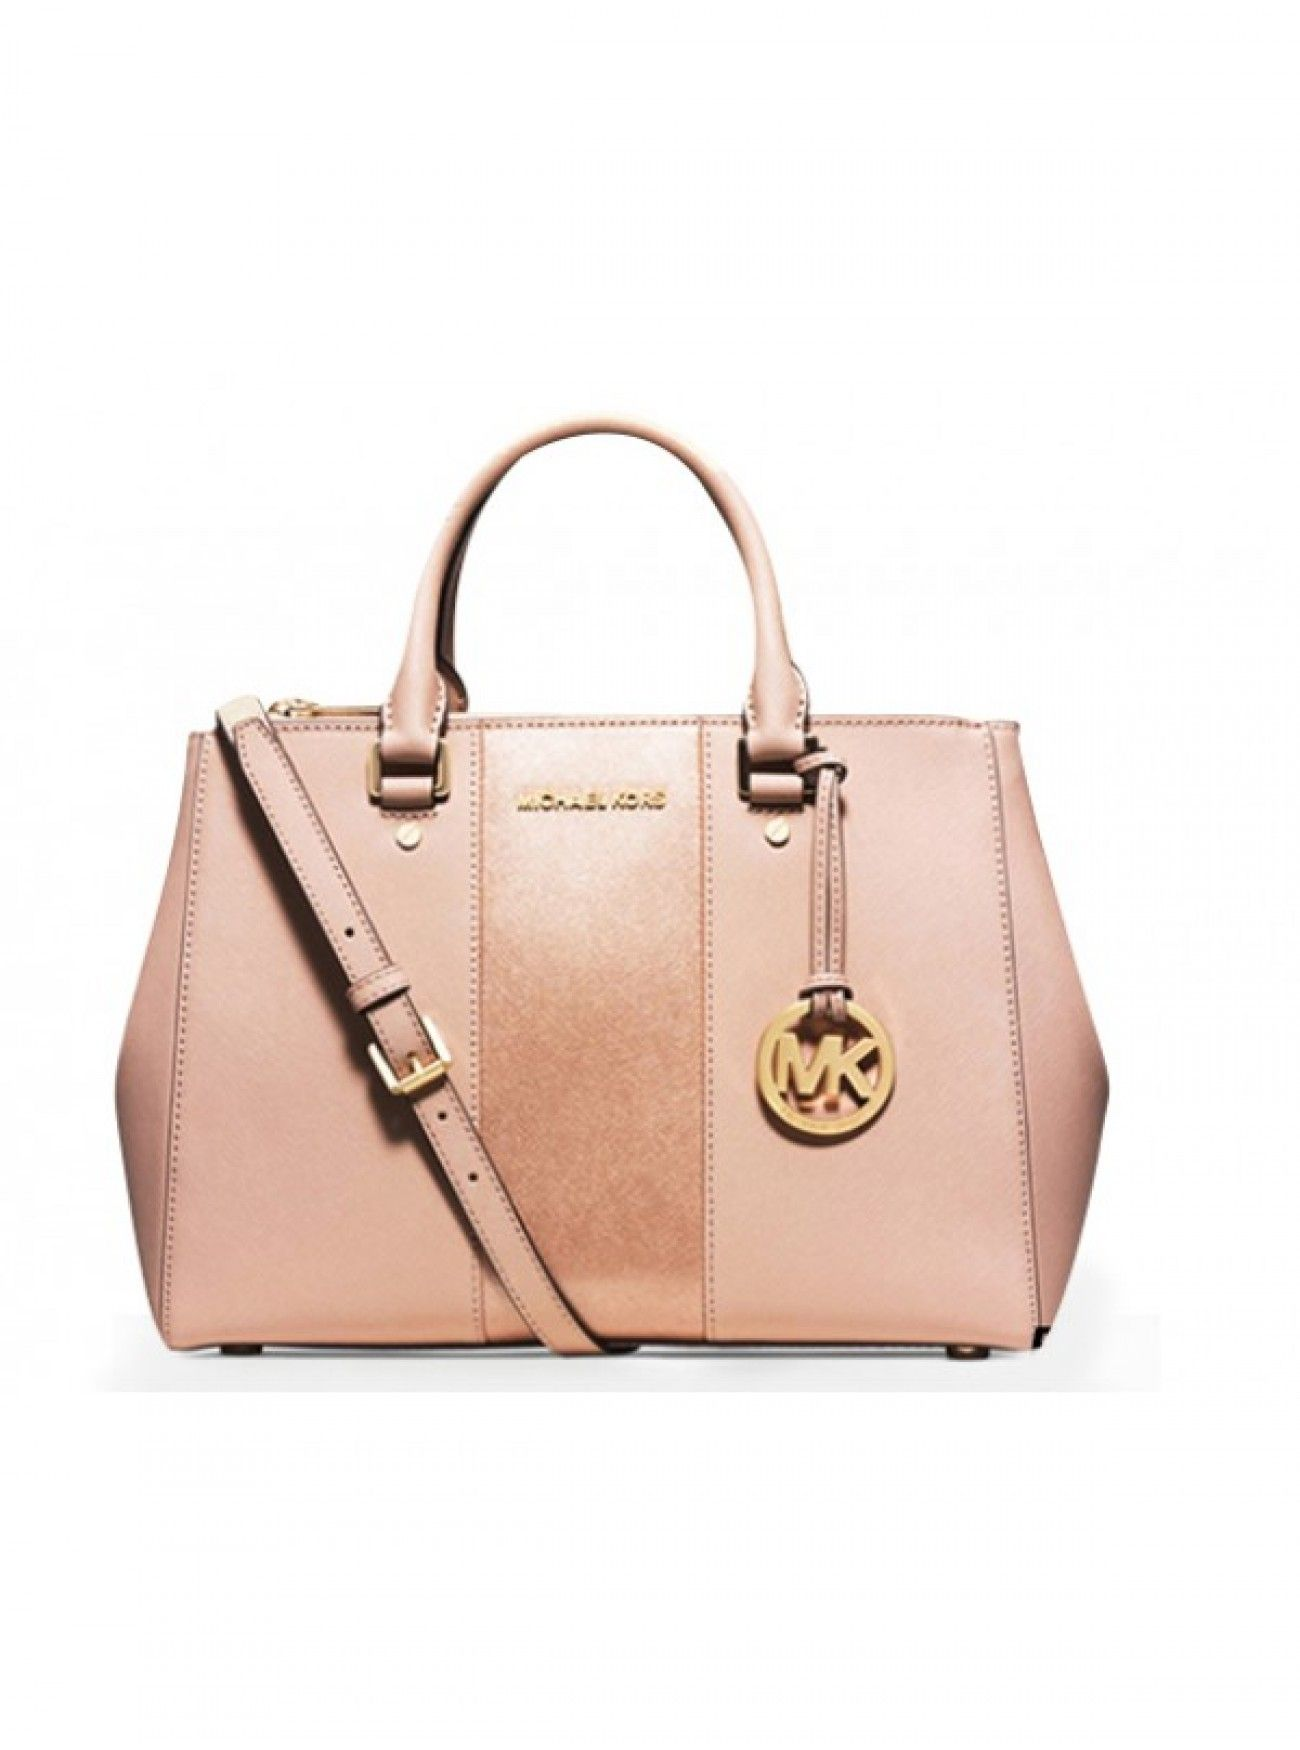 cb9799b4845e Price Michael Kors Large Color-Block Leather Satchel Rose Gold And Pink  Canada Online